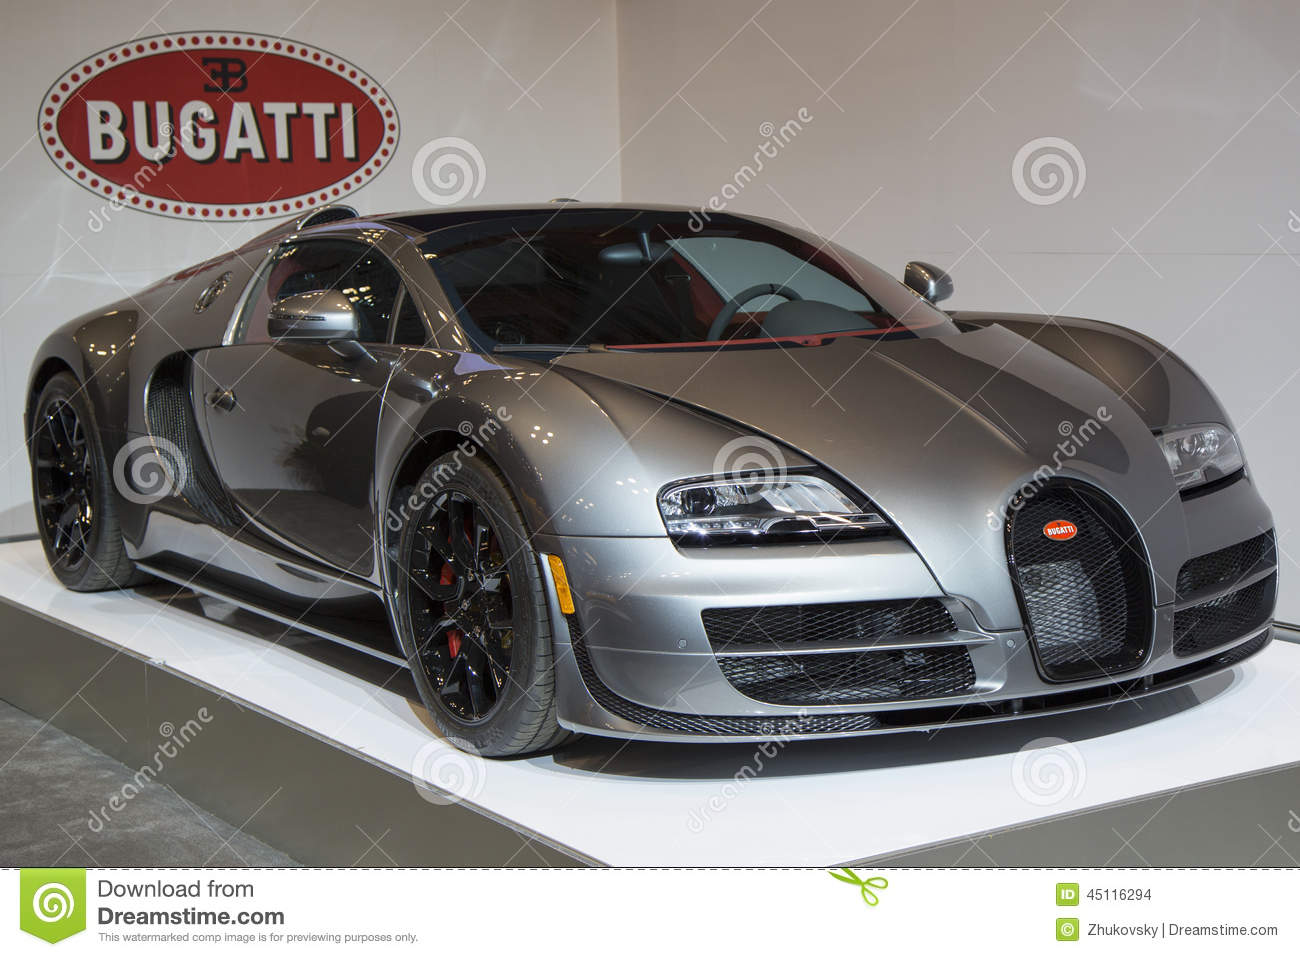 bugatti car prices new car release date and review 2018 amanda felicia. Black Bedroom Furniture Sets. Home Design Ideas